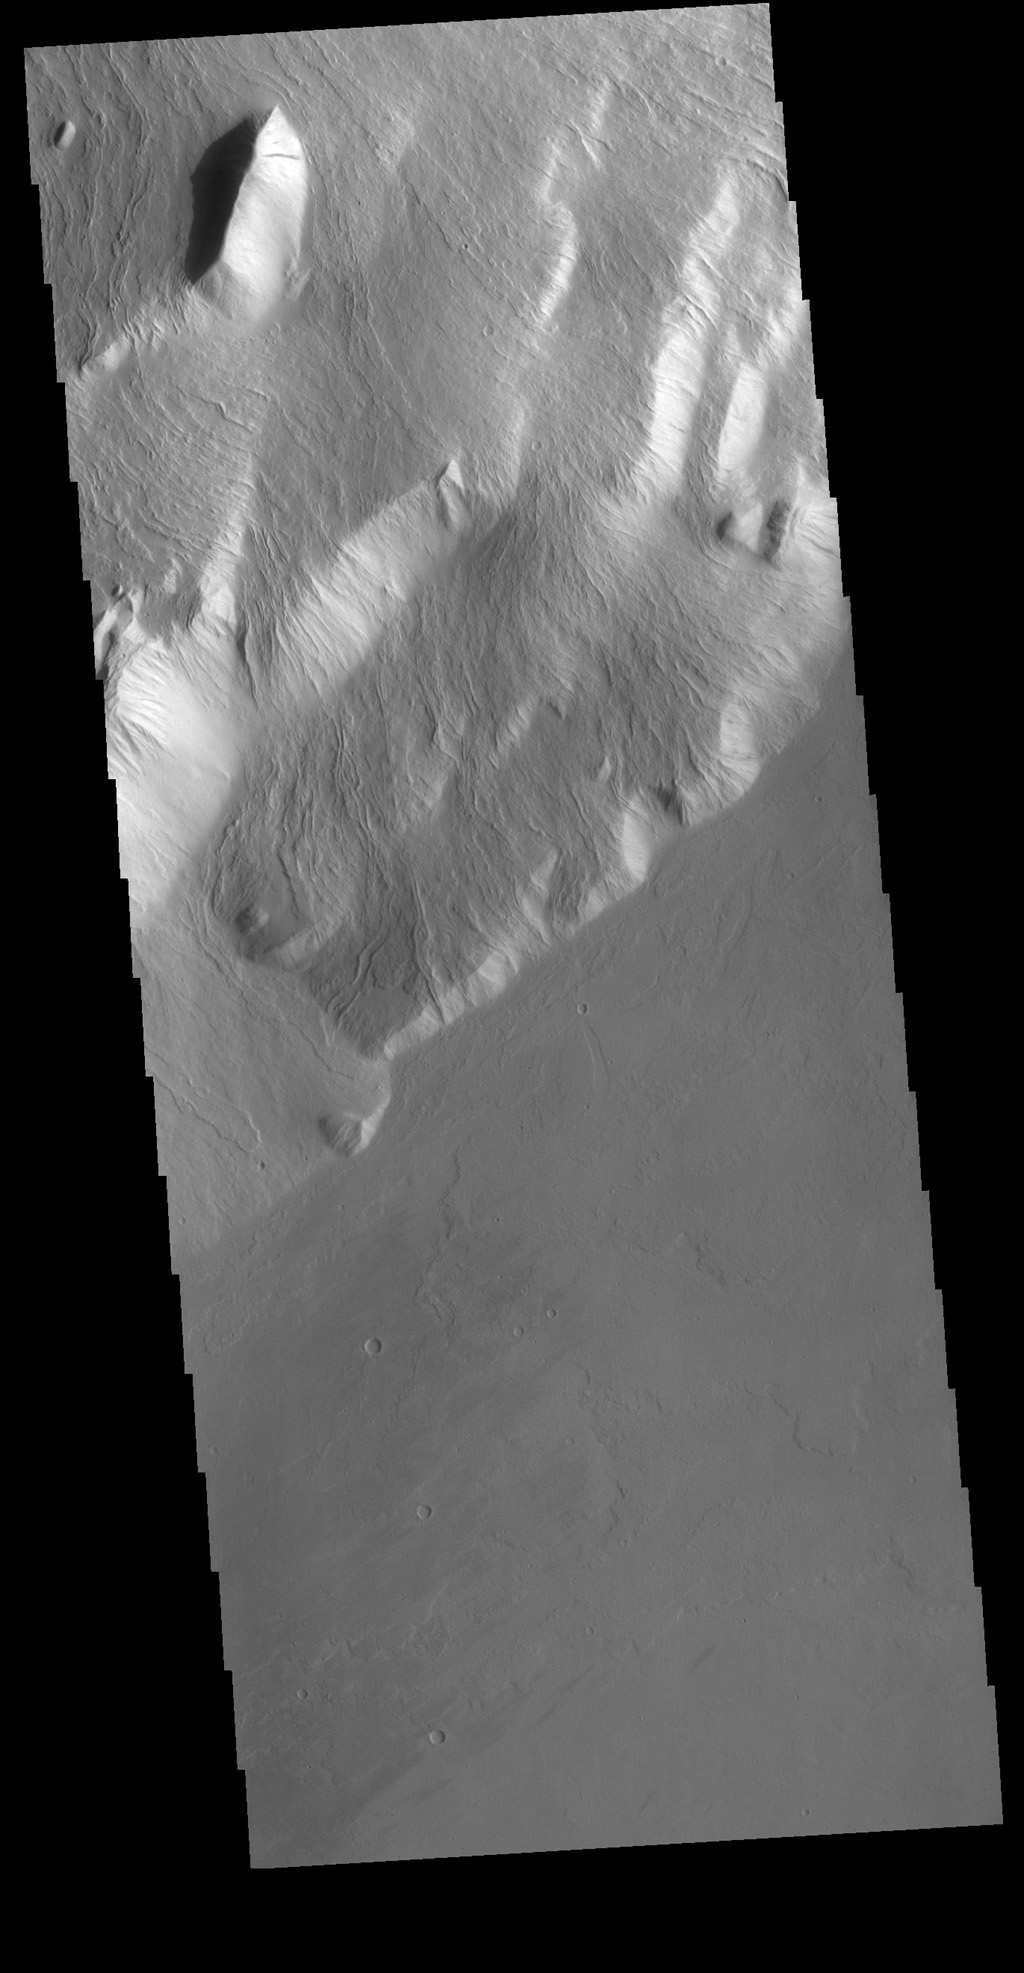 This image from NASA's Mars Odyssey shows Olympus Rupes, the large escarpment surrounding Olympus Mons. The escarpment is a cliff where there is a large elevation change over a short distance.